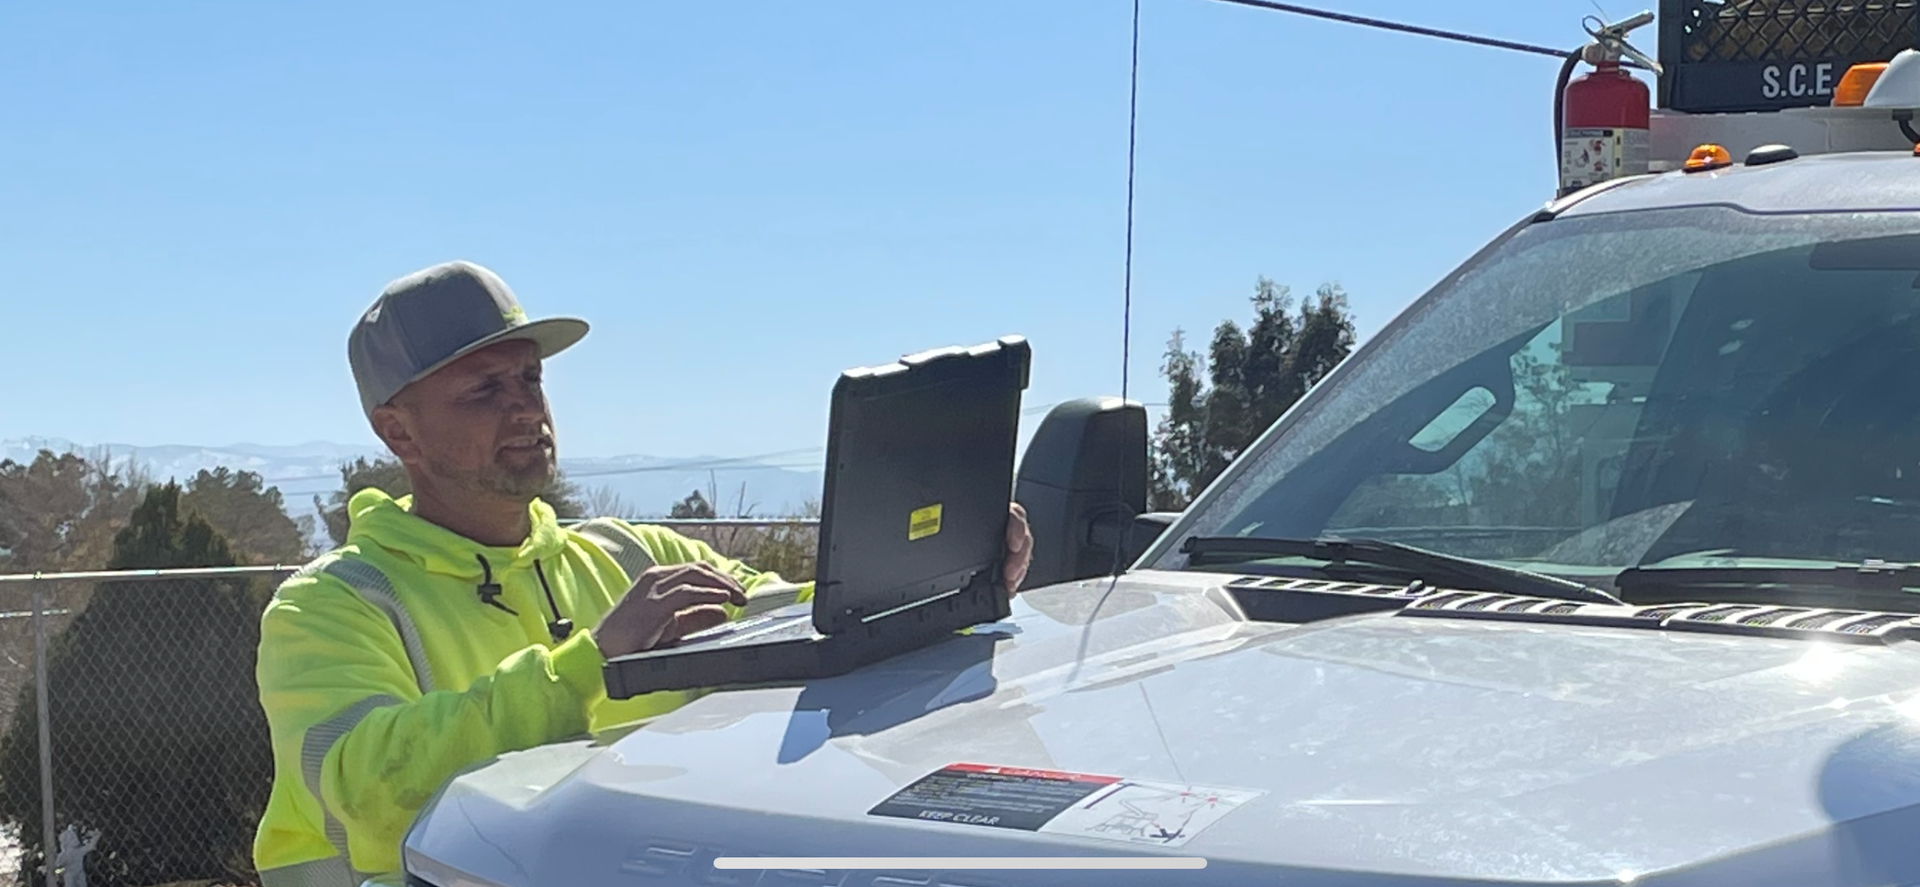 Brandon Wright, SCE troubleman and inspector, watches a live video feed of a drone inspecting electrical equipment.